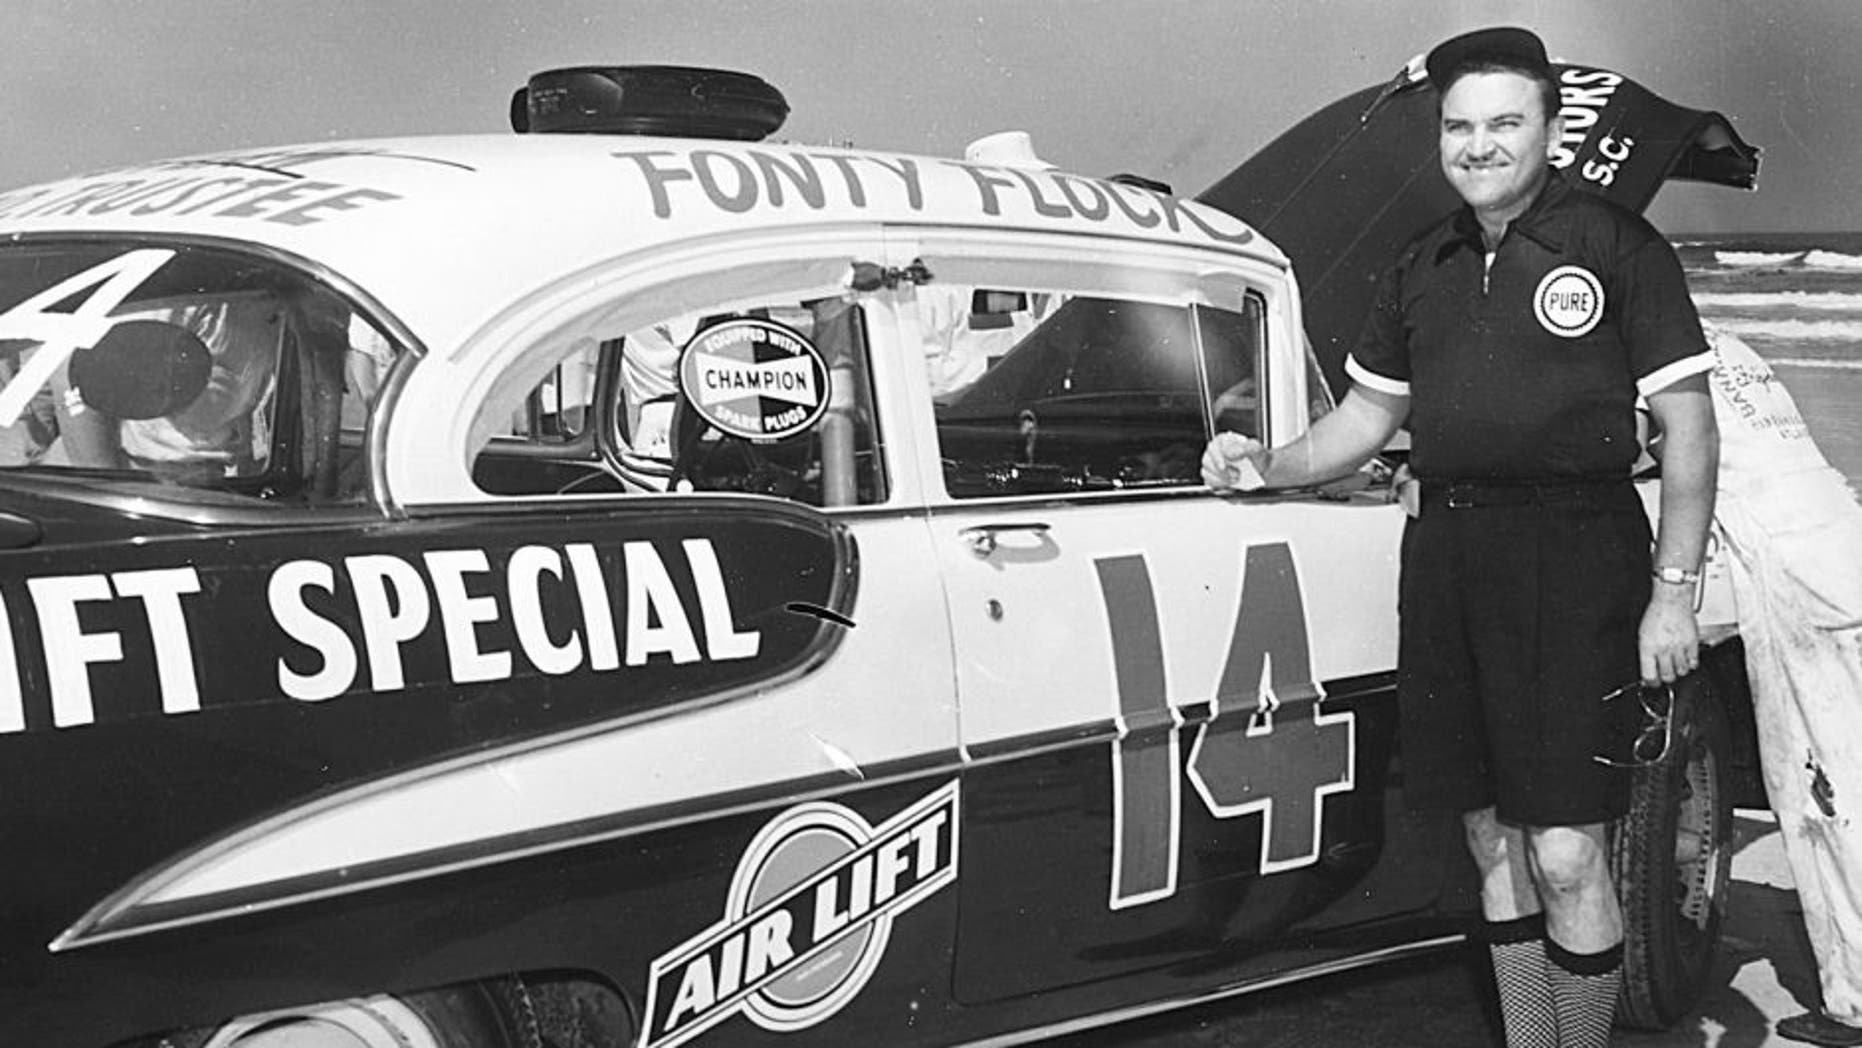 DAYTONA BEACH, FL - 1955: Fonty Flock with Frank Christian's 1955 Air Lift Special Oldsmobile at the Daytona Beach-Road Course in 1955. Flock finished fifth in the Grand National race that year. (Photo by ISC Archives via Getty Images)